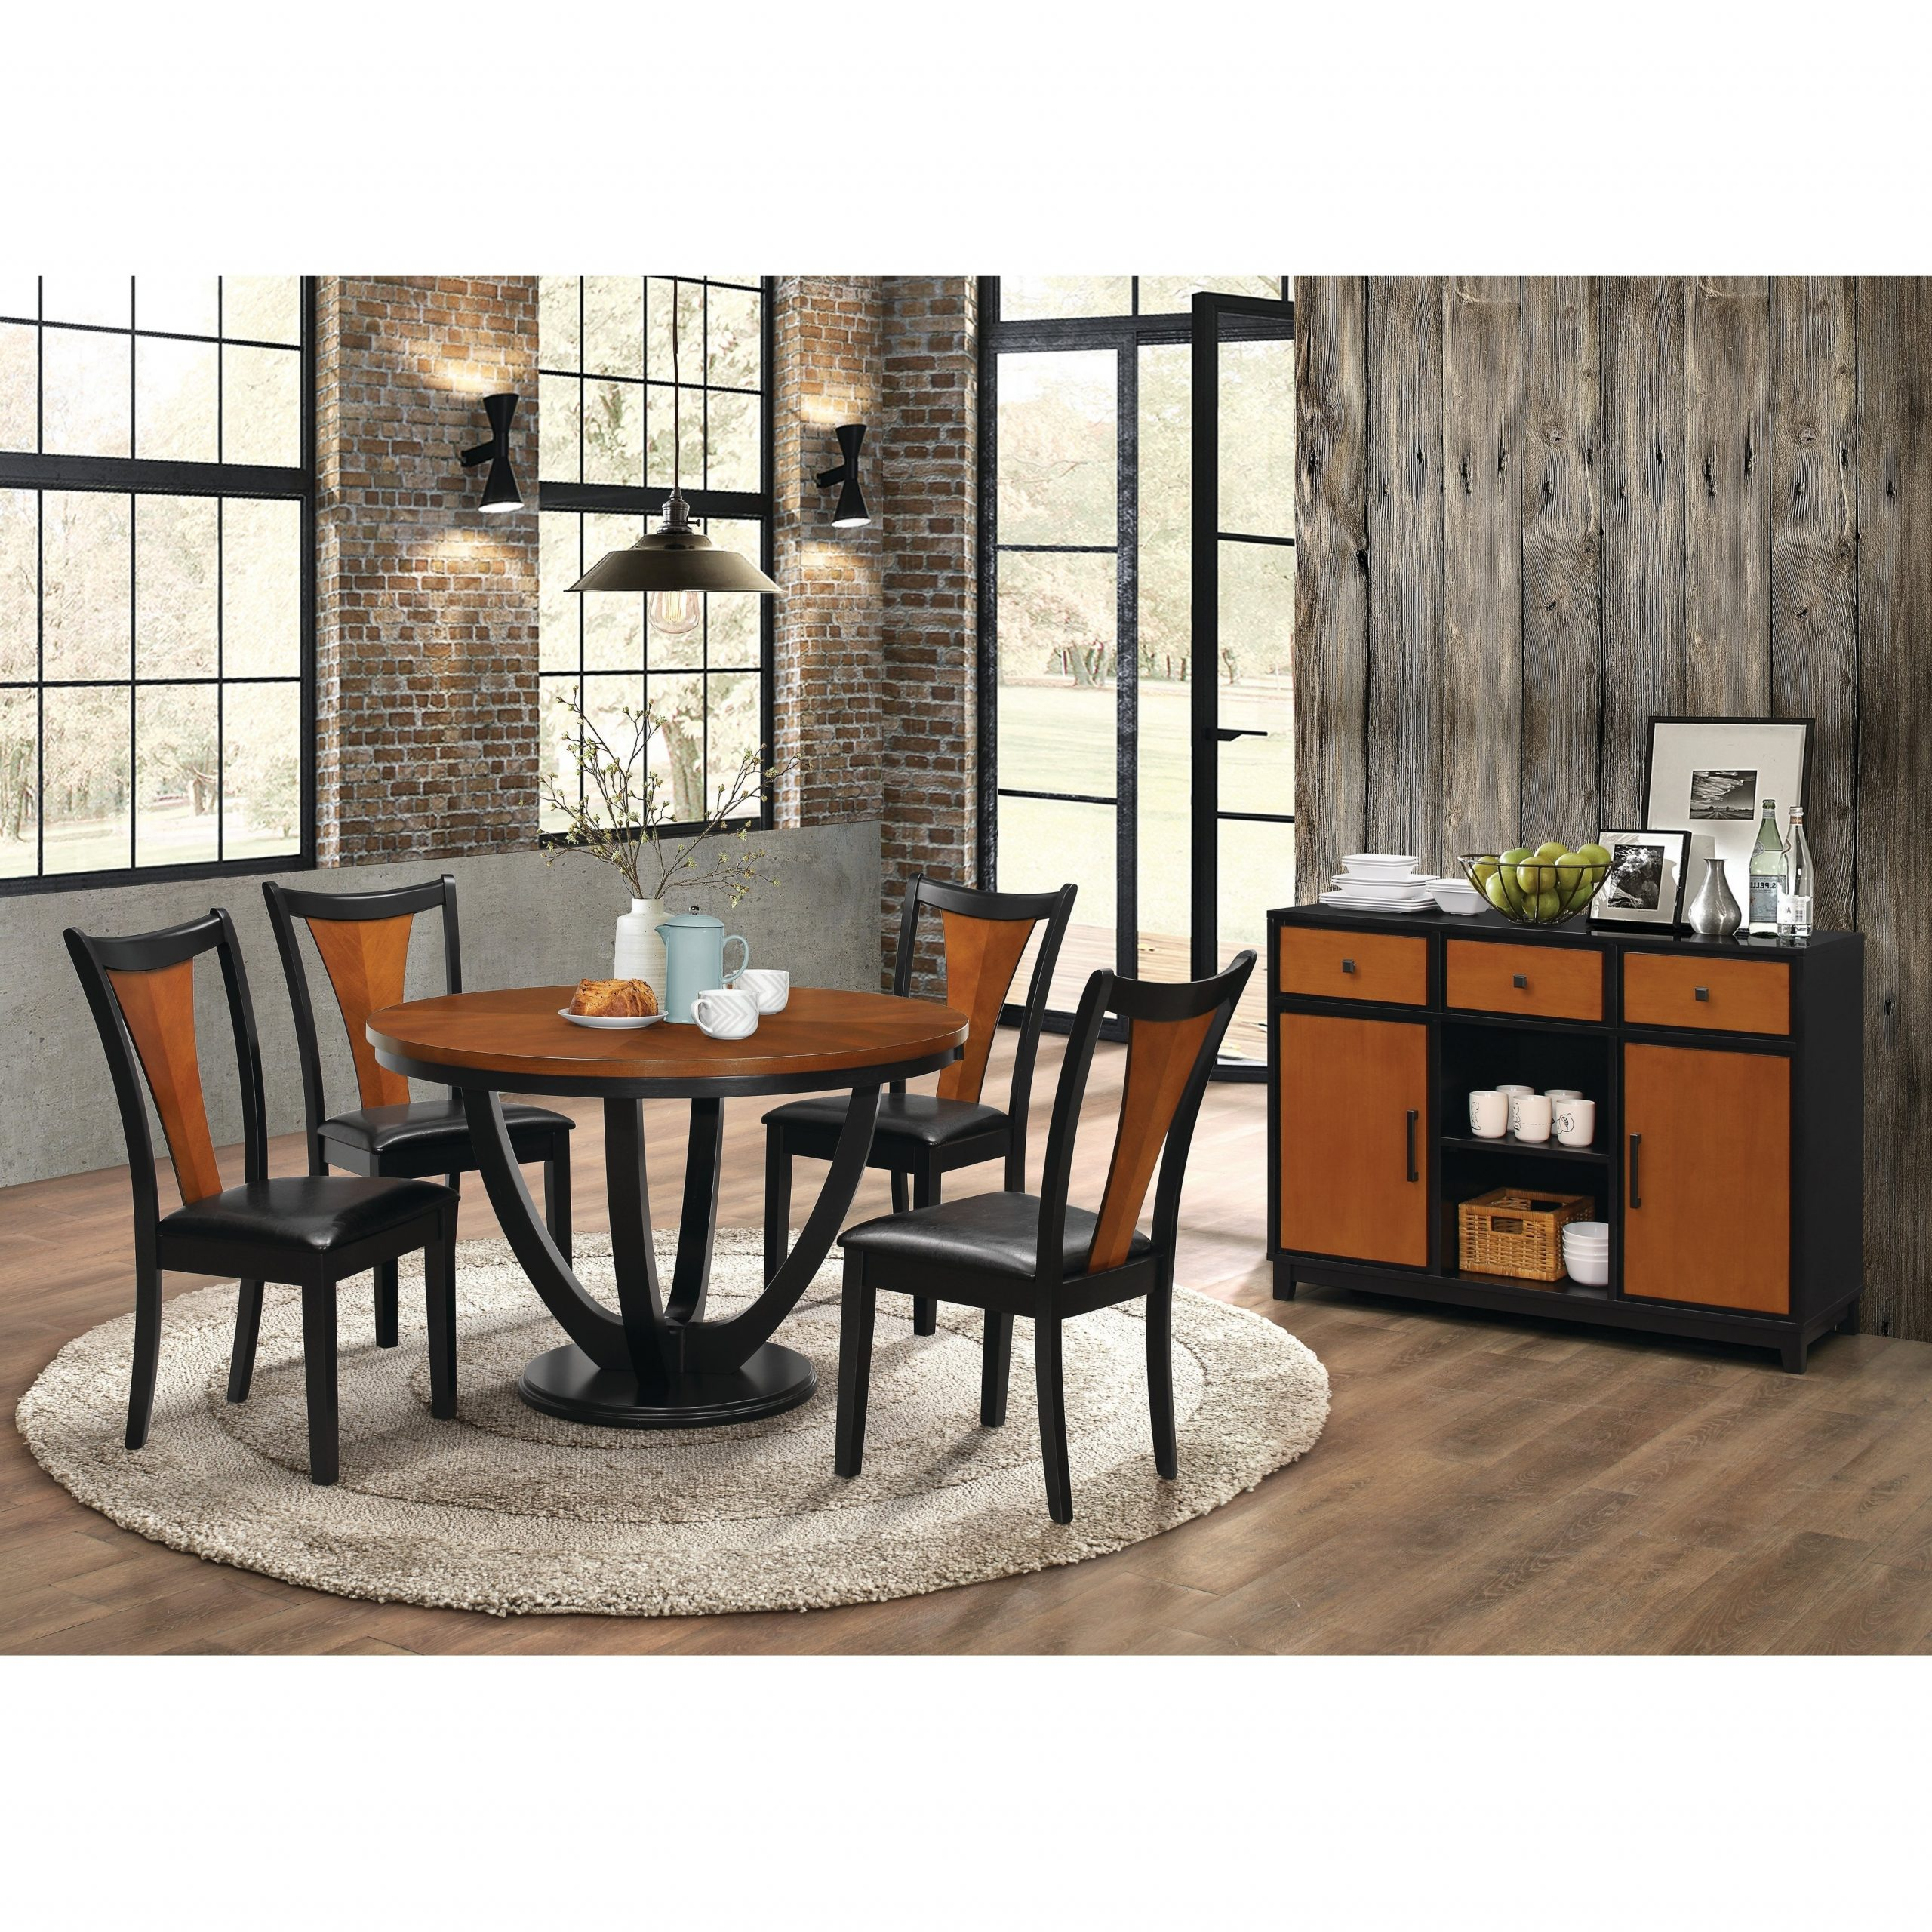 Well Liked Transitional 4 Seating Drop Leaf Casual Dining Tables With Boyer Transitional Amber And Black 5 Piece Dining Set (View 26 of 30)